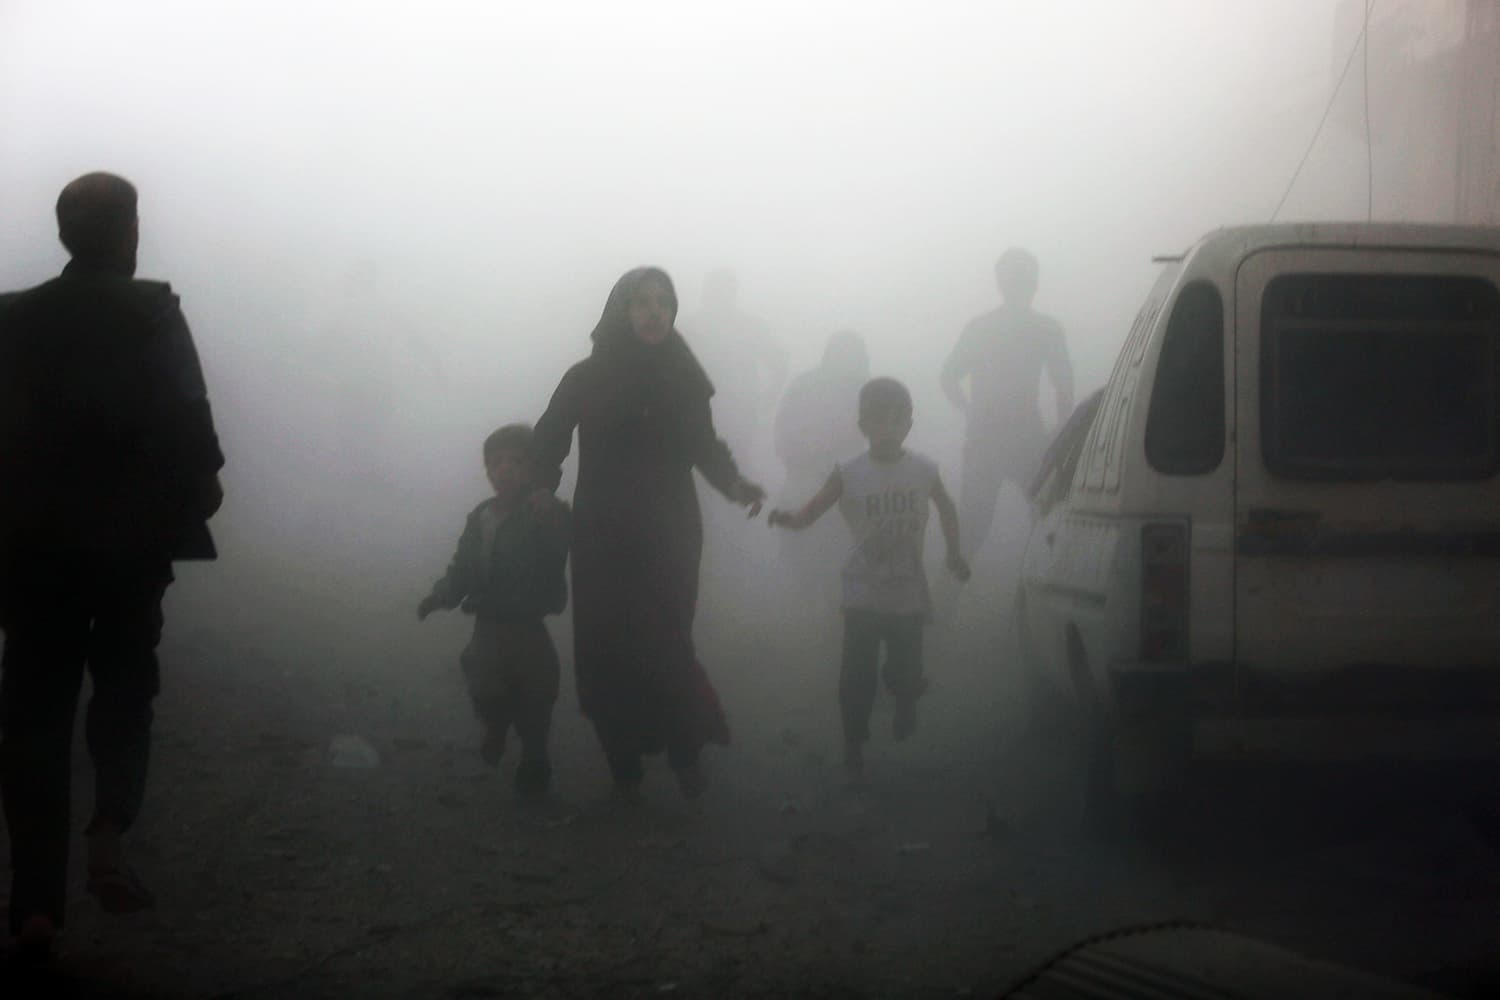 Syrians emerge from a dust cloud following a reported airstrike on Kafr Batna, in the rebel-held Eastern Ghouta area, on the outskirts of the capital Damascus, on September 30, 2016. ─ AFP